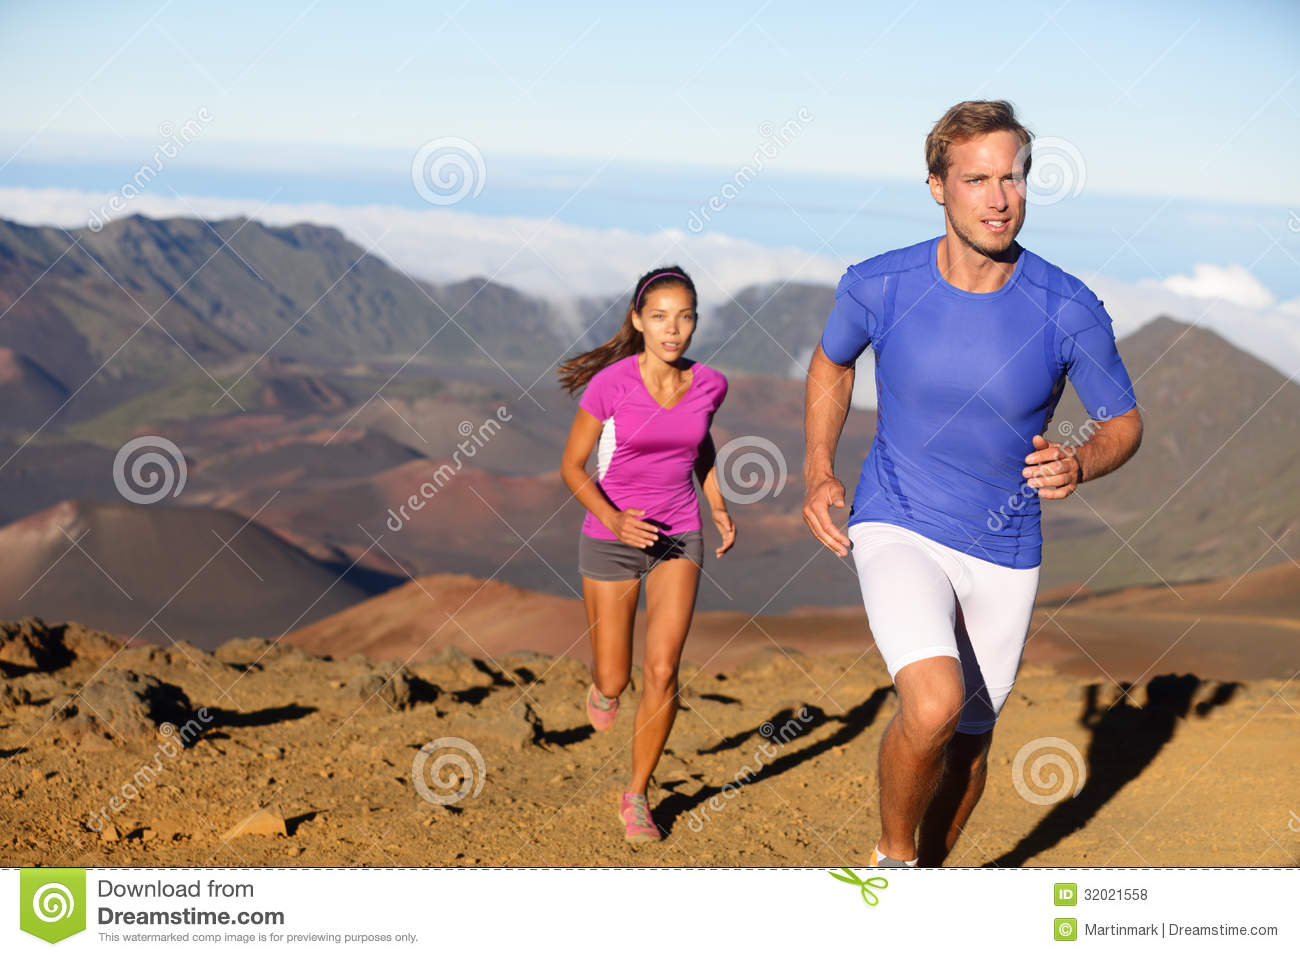 Running sport - trail runners in cross country run